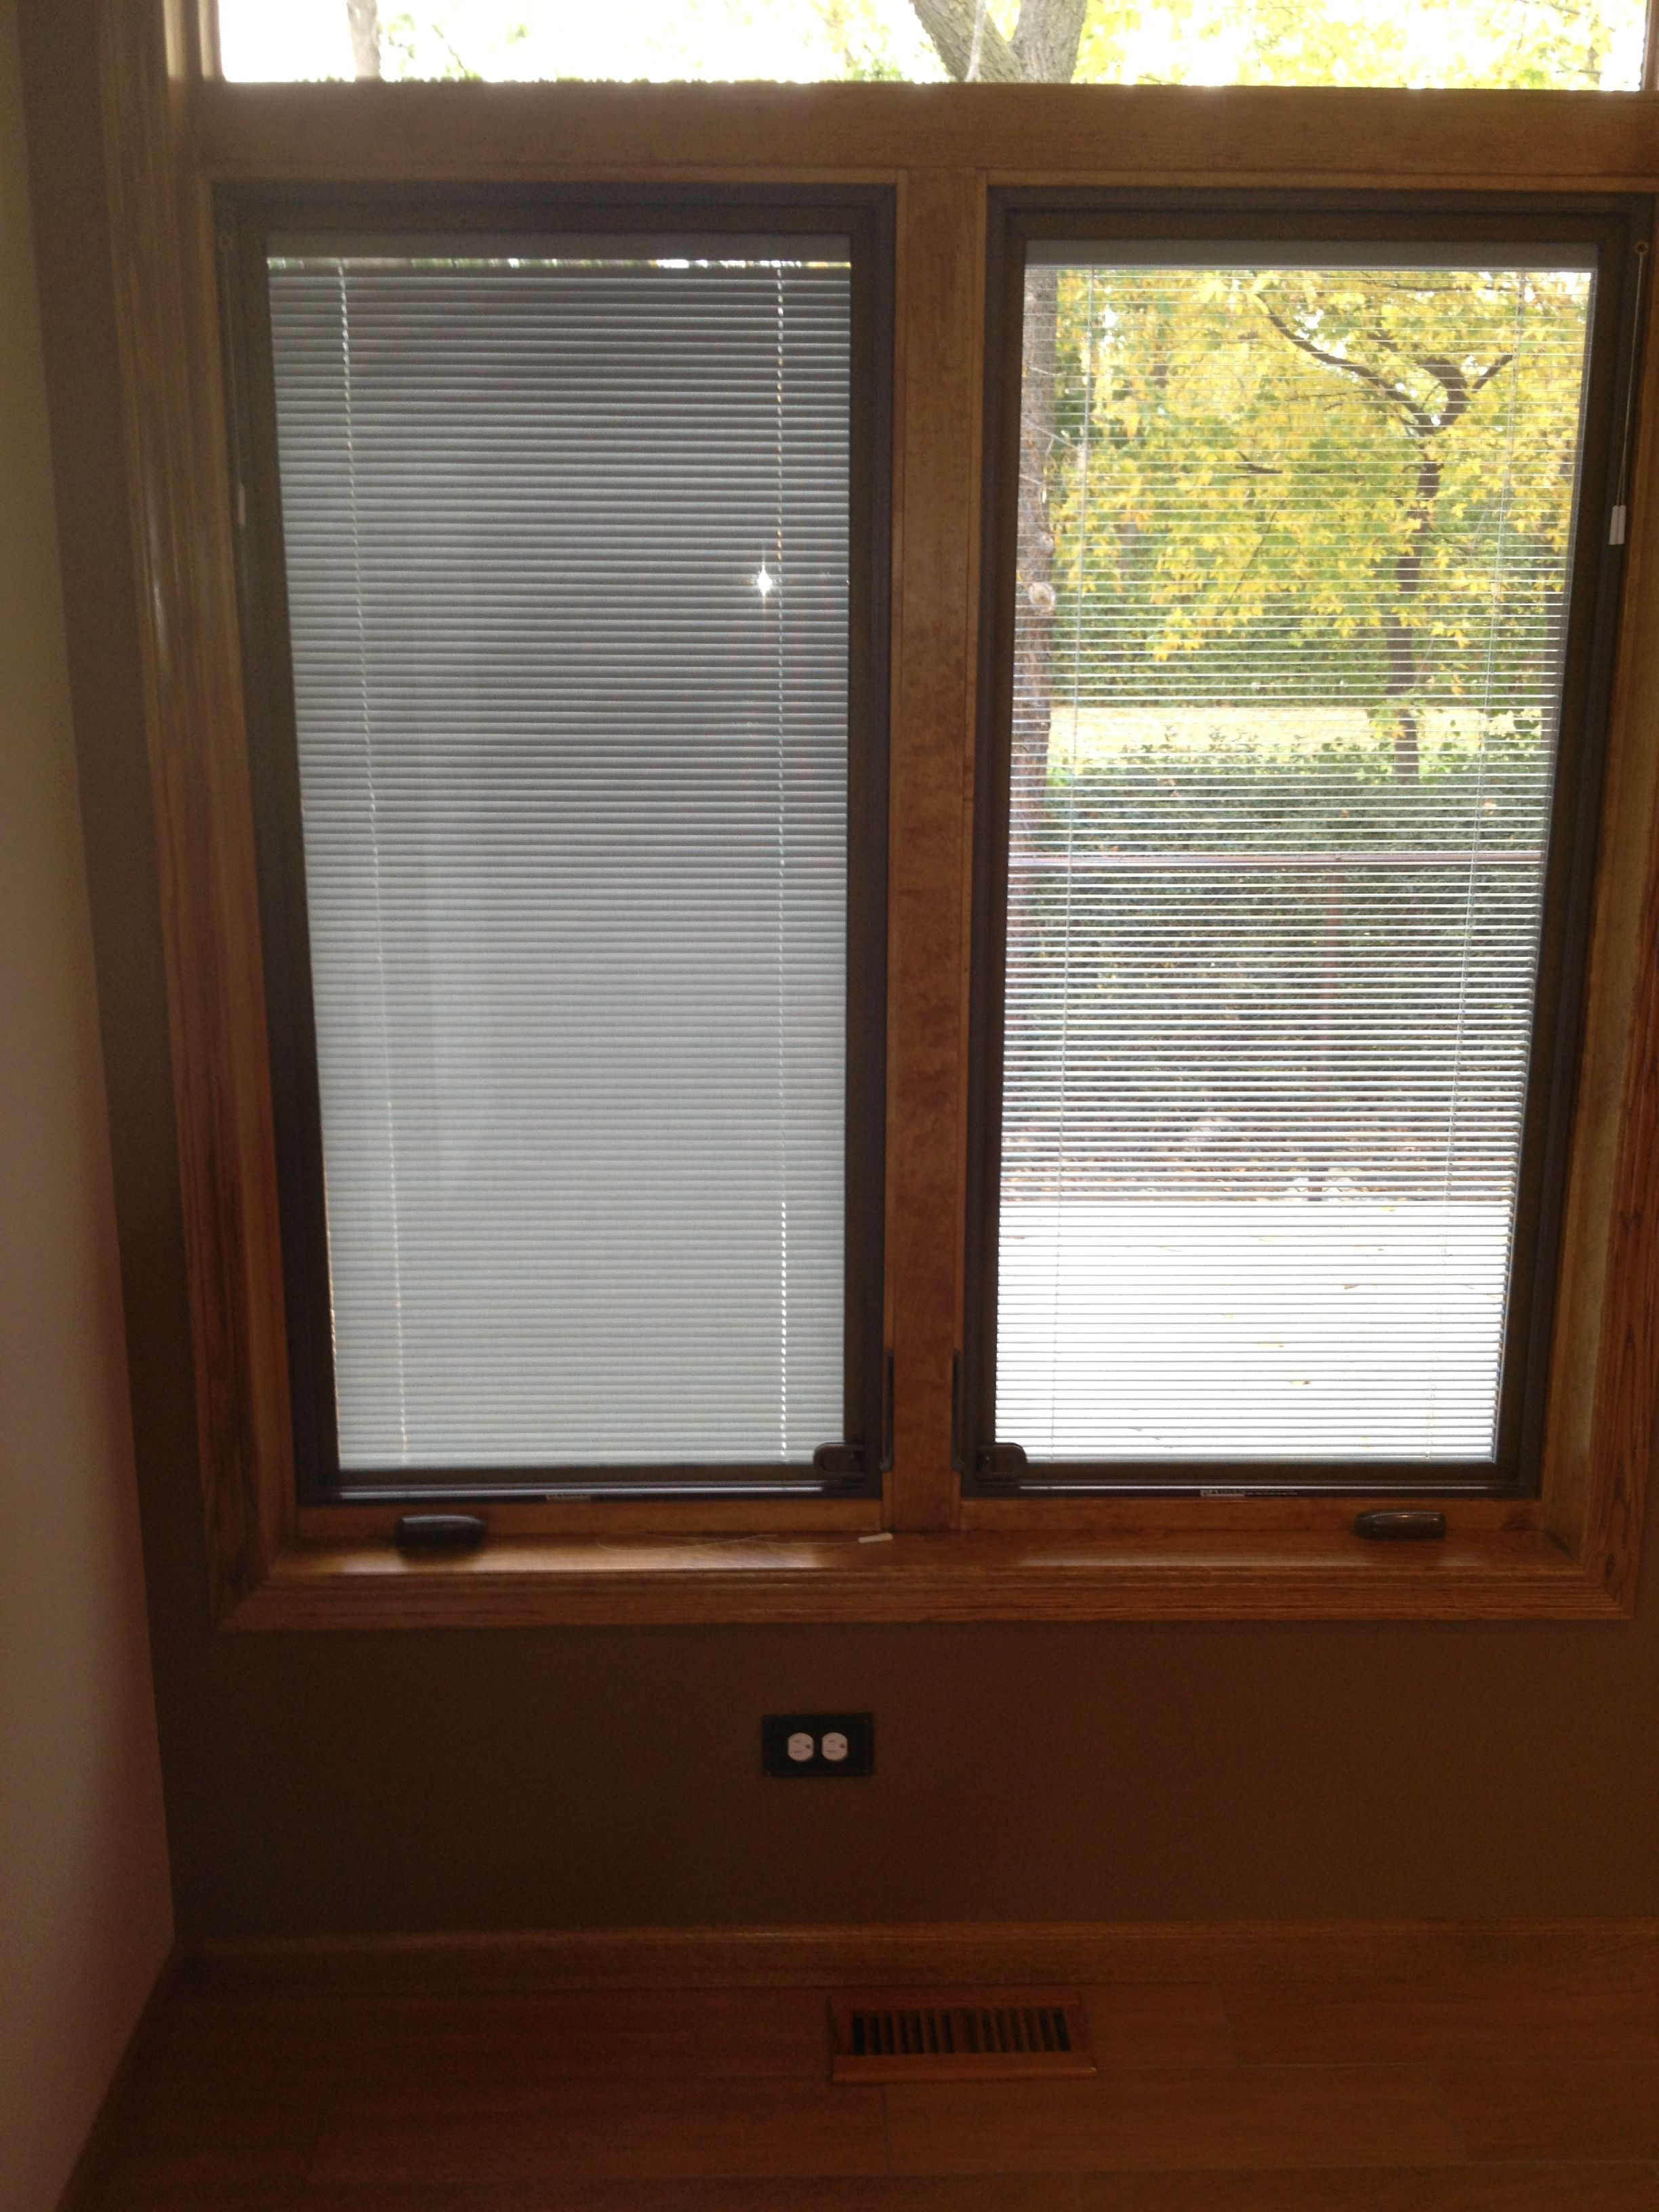 Here Is A Cat Window With Blinds In The Gl And They